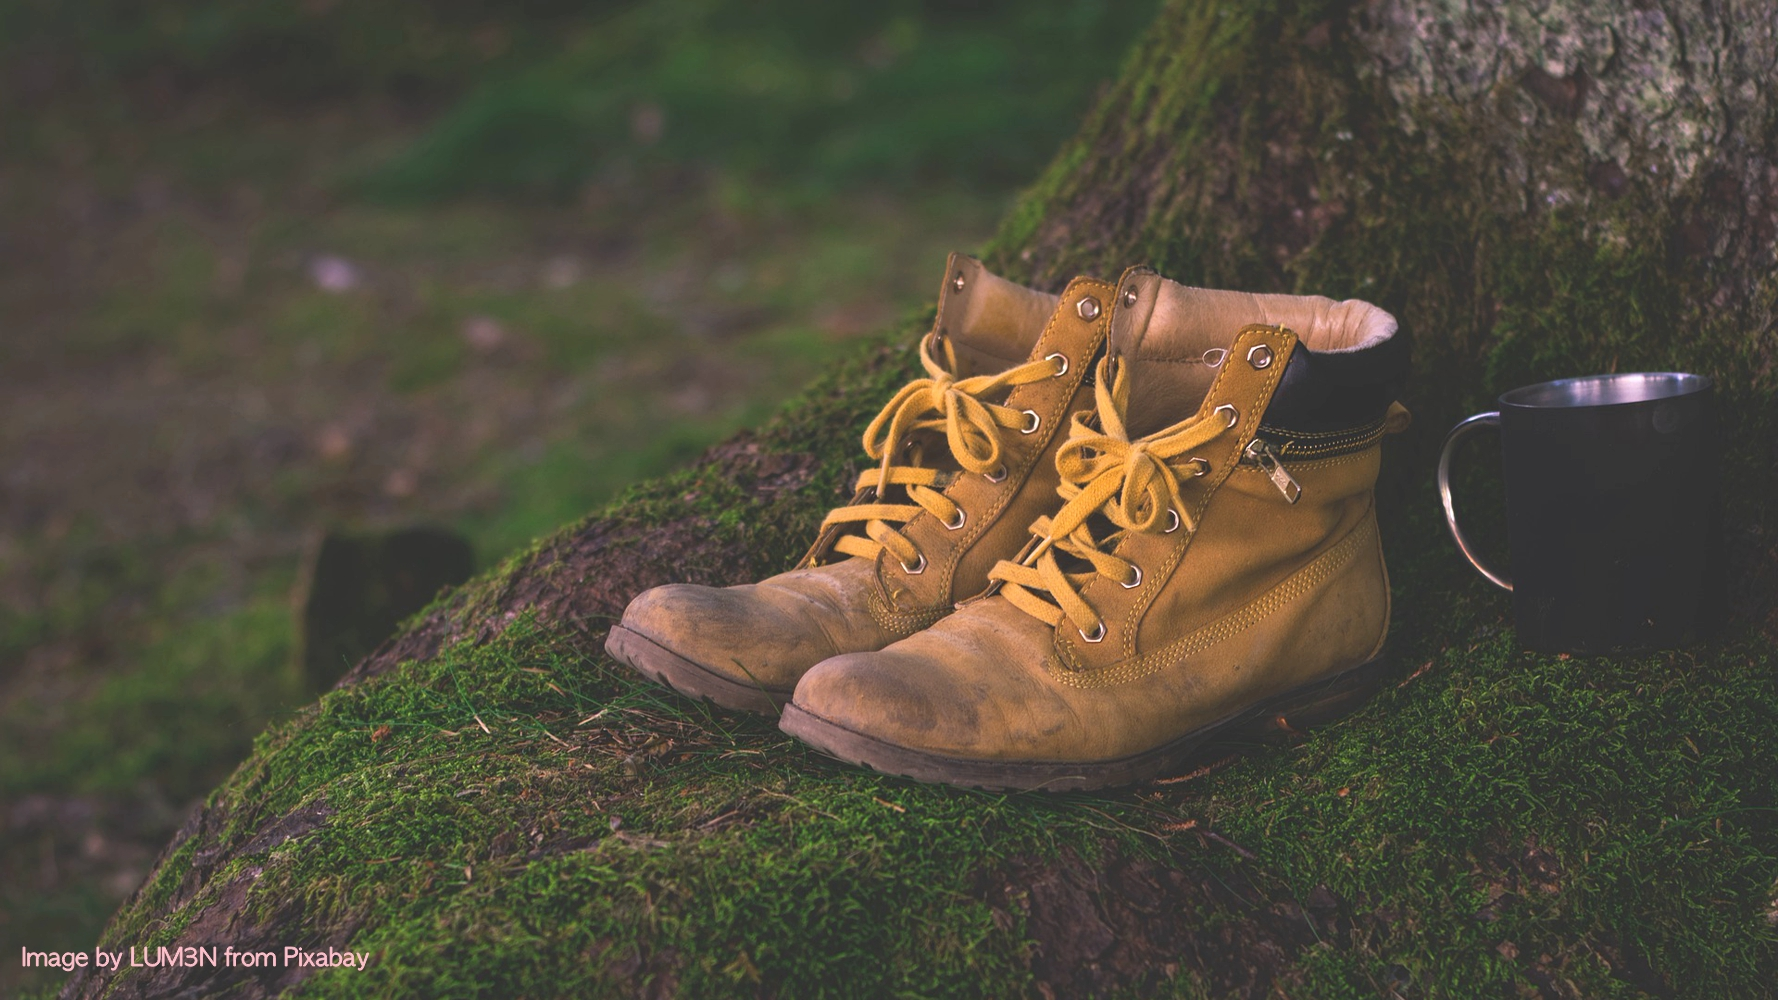 A pair of hiking boots resting in the outdoors